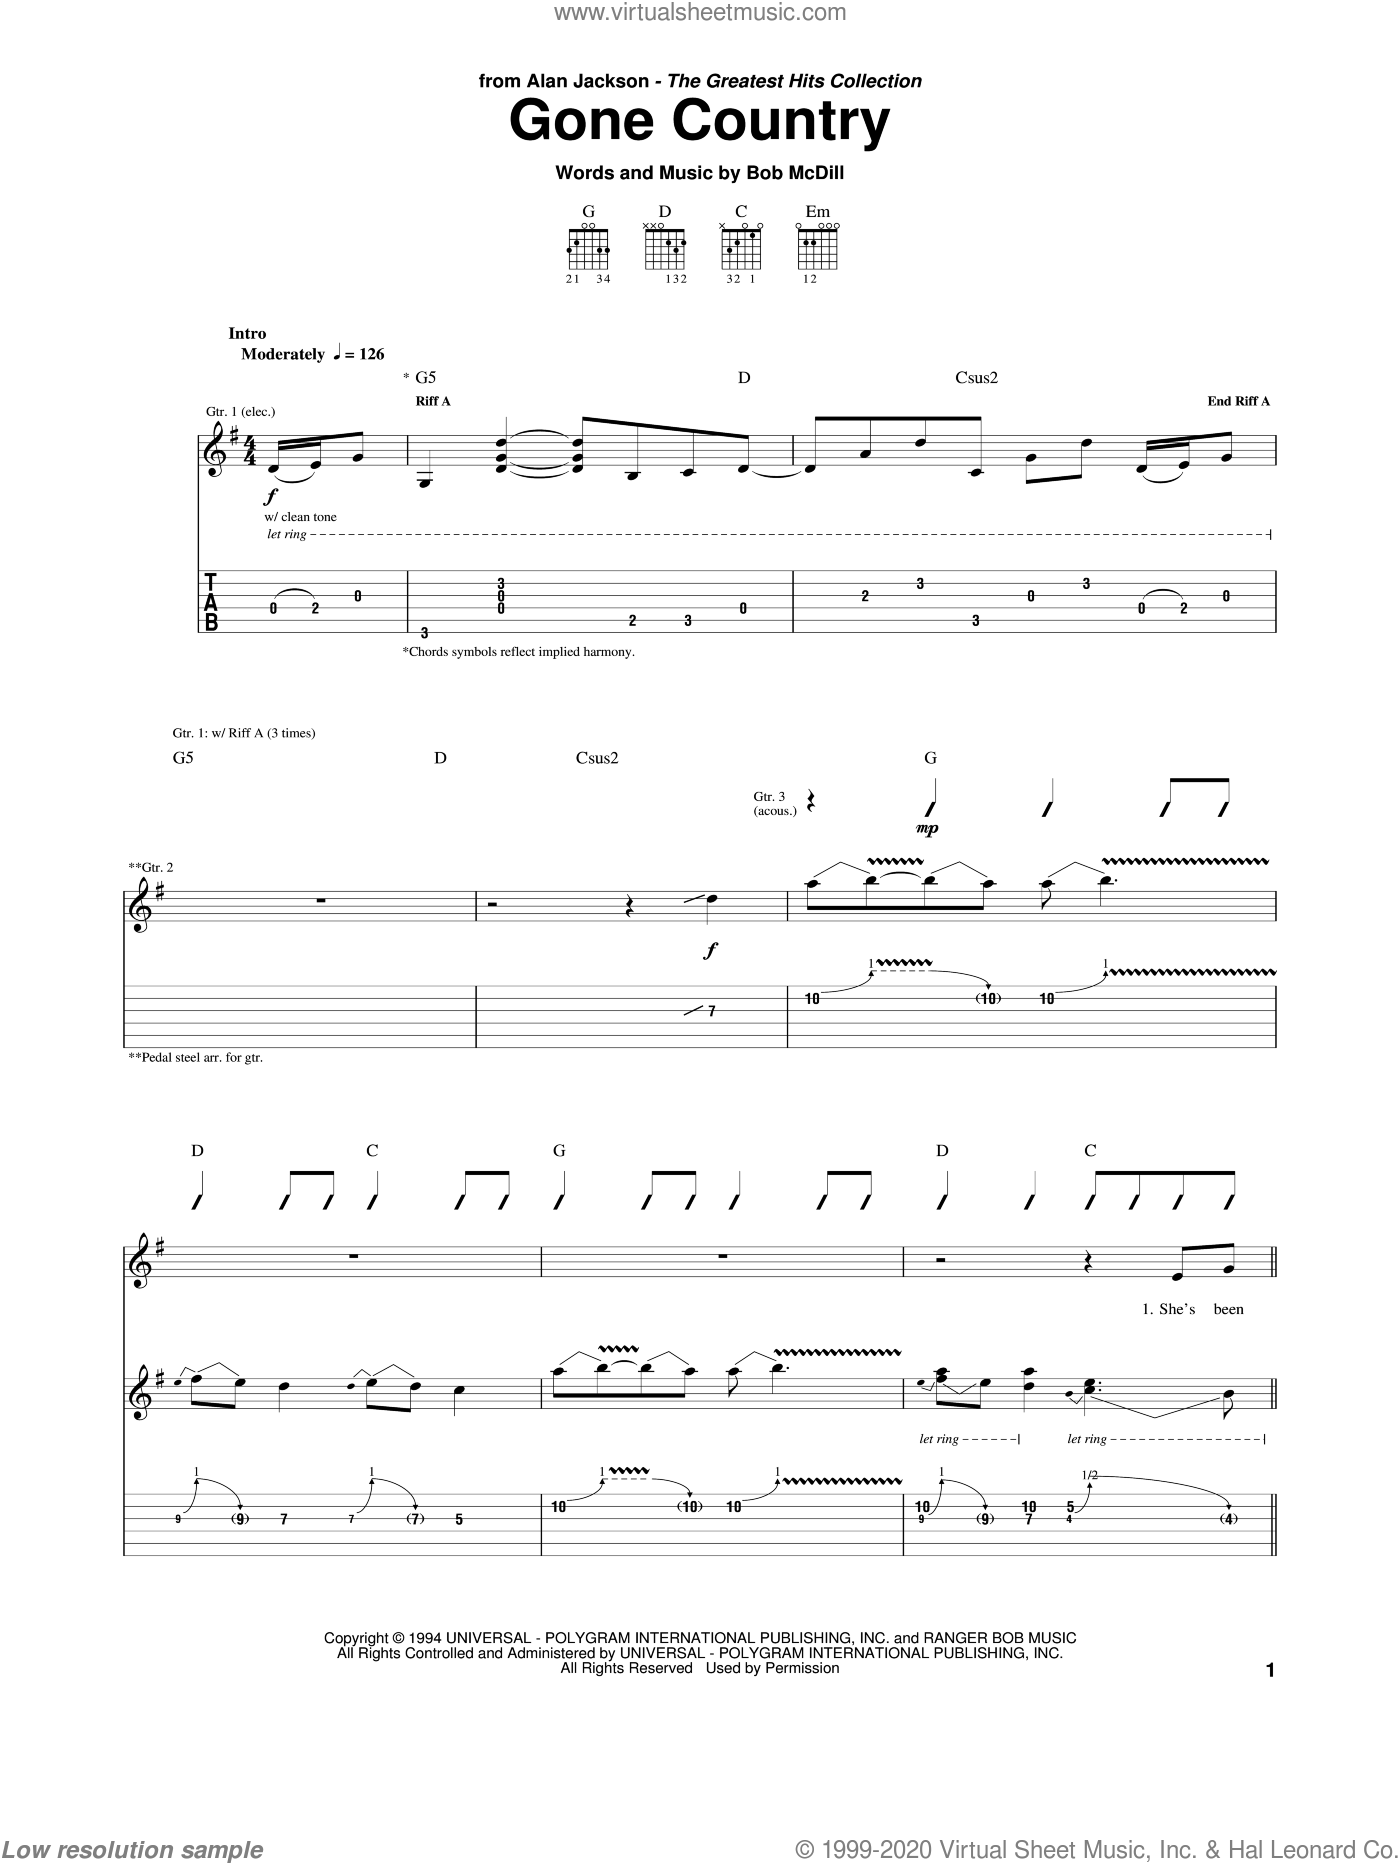 Gone Country sheet music for guitar (tablature) by Alan Jackson and Bob McDill, intermediate skill level